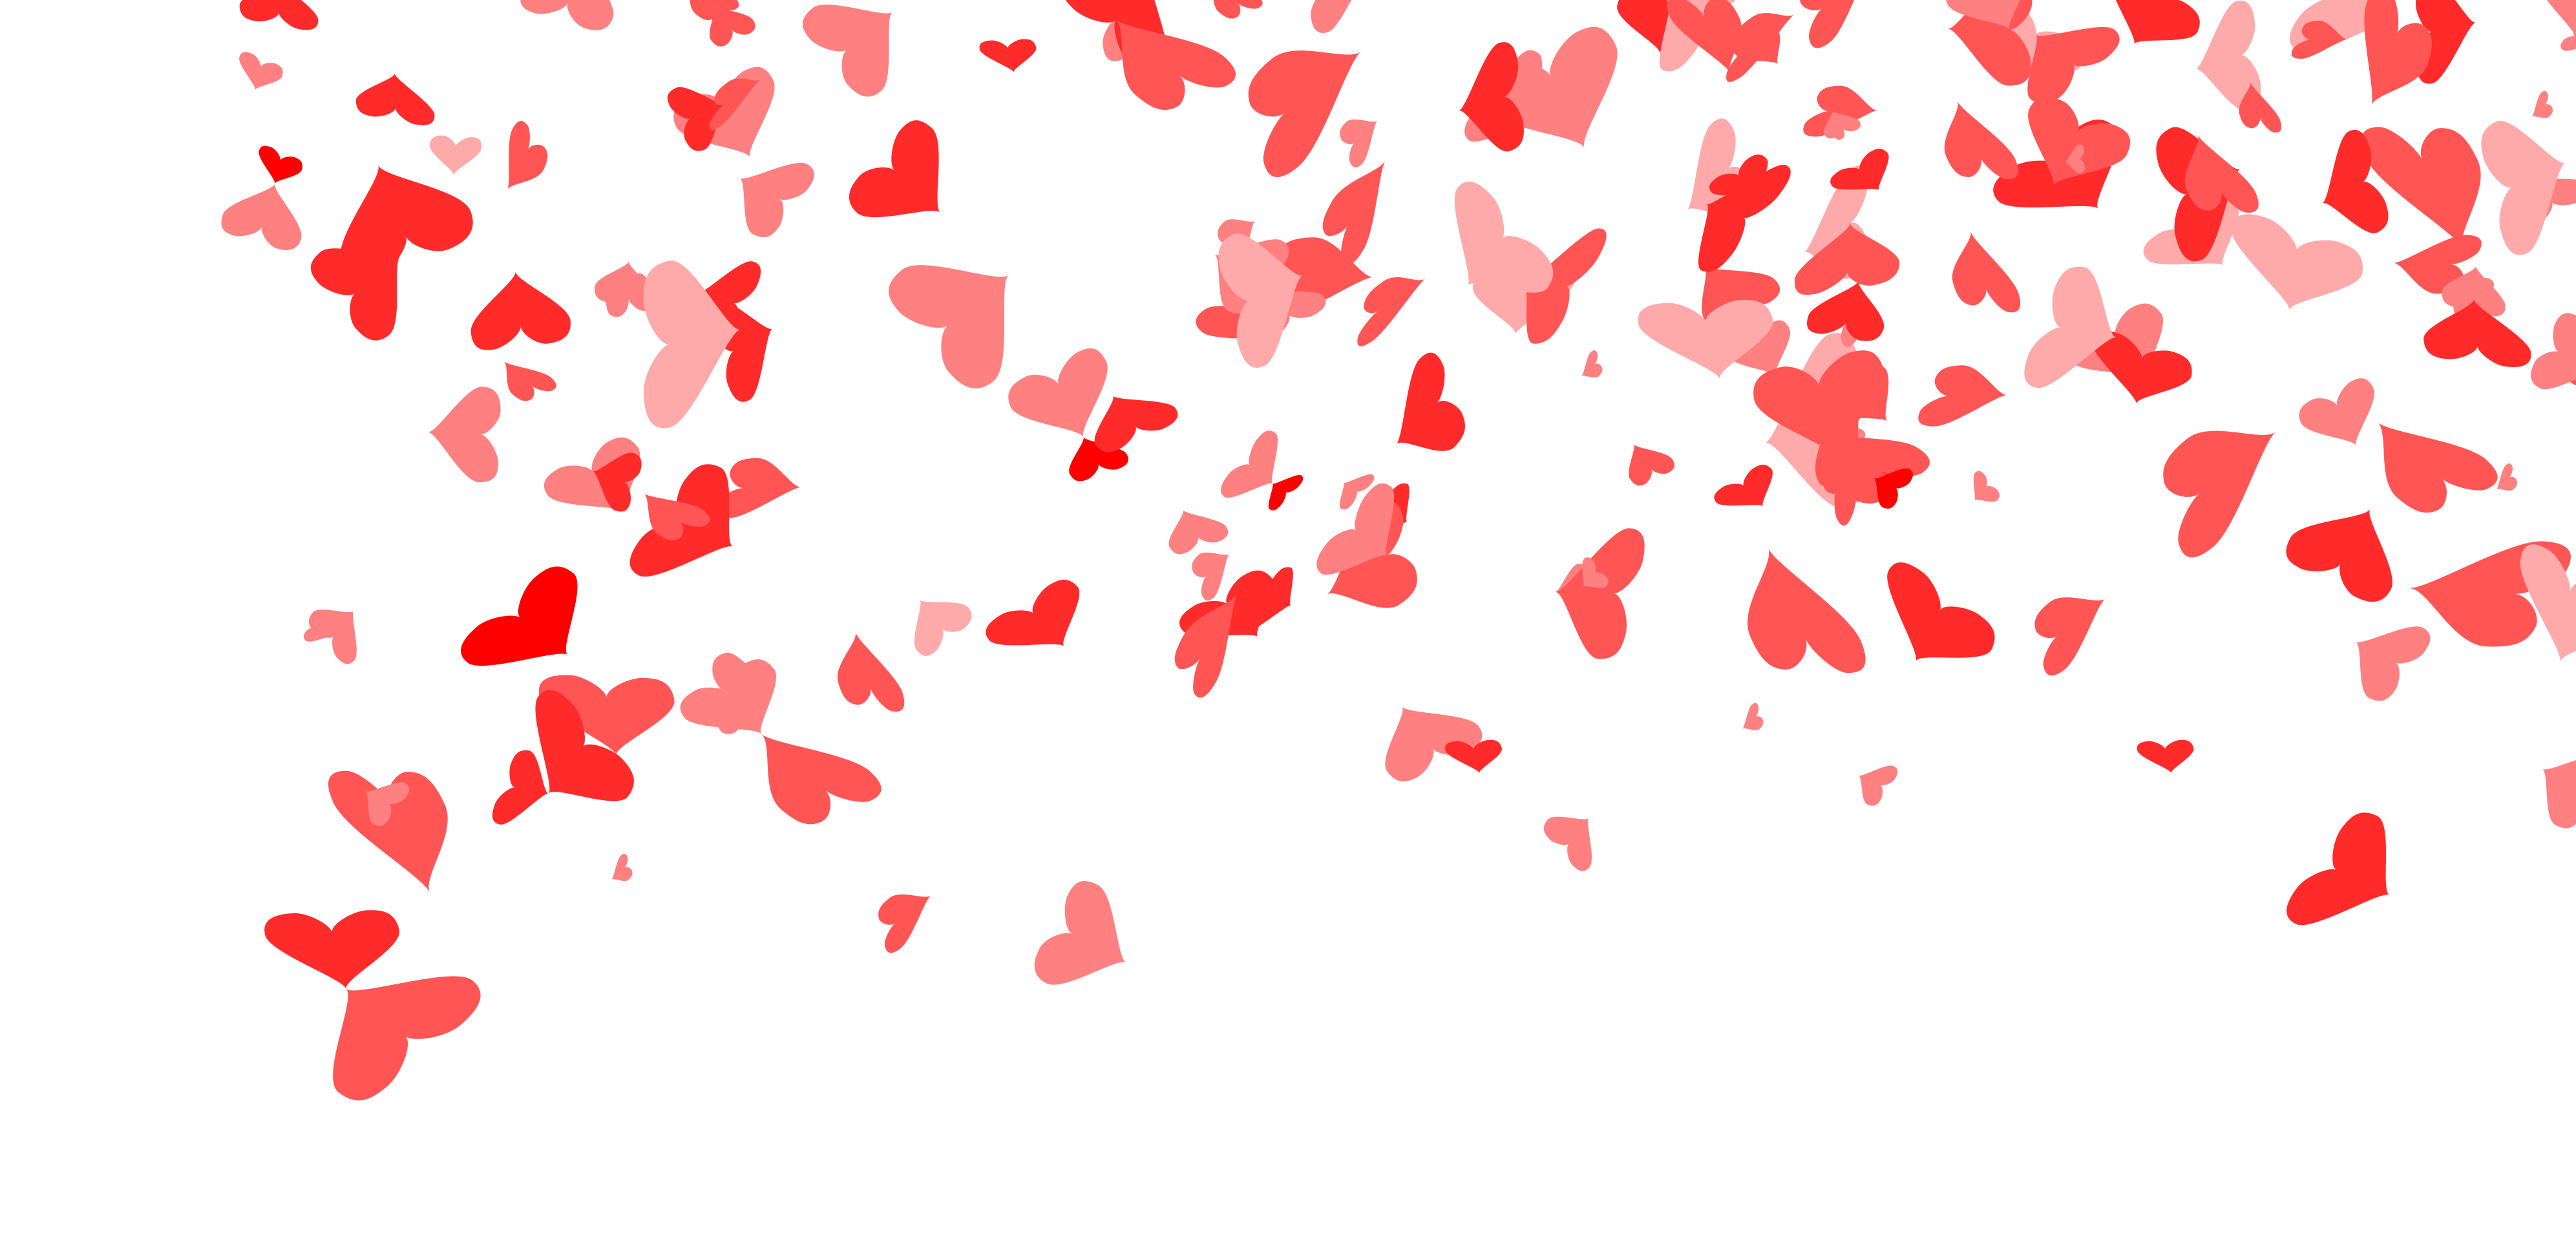 4 Heart Confetti Background (PNG Transparent).